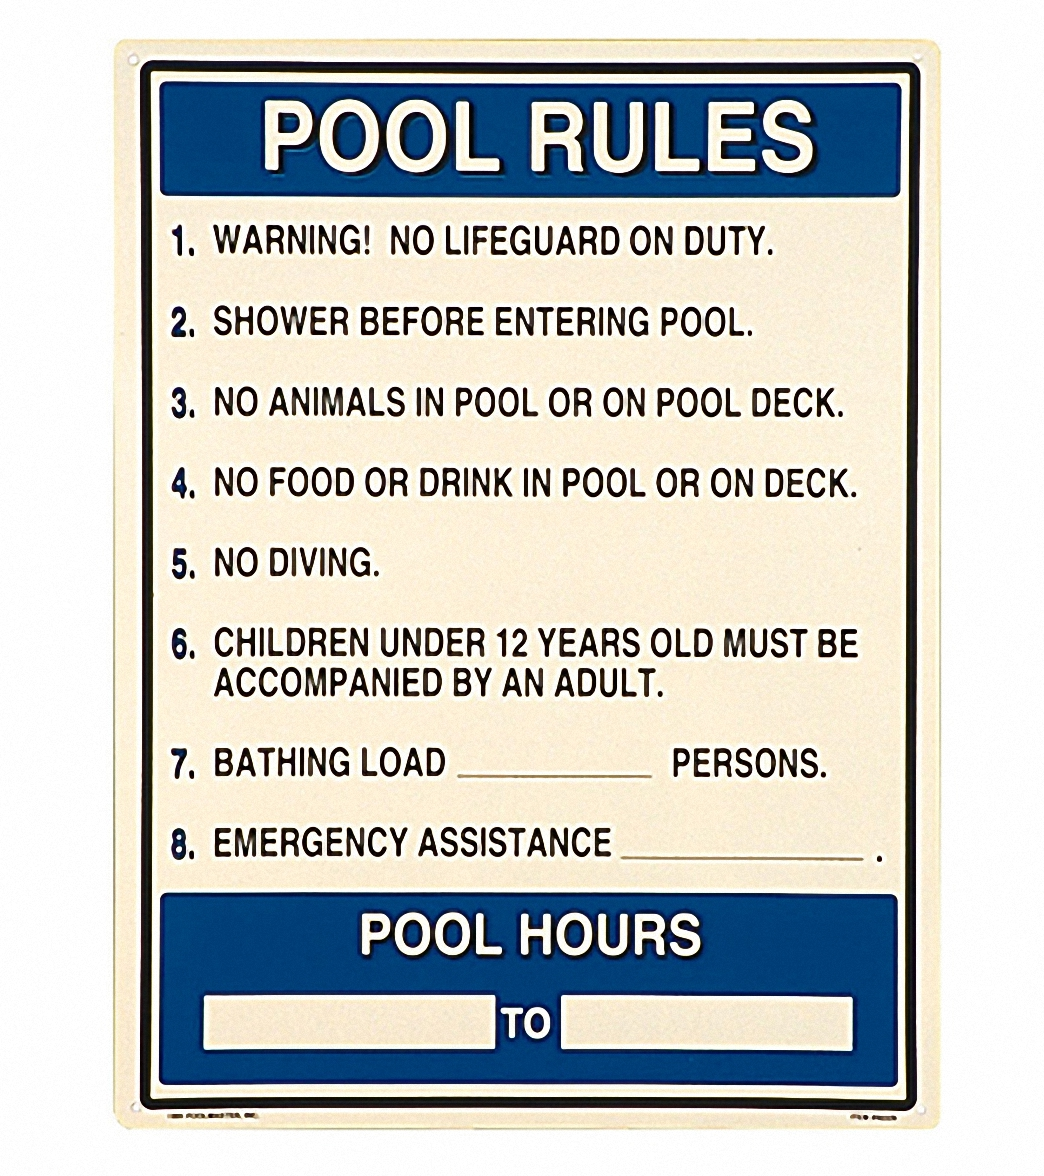 bac2de6e384 Poolmaster Pool Rules Sign with Hours Sign at SwimOutlet.com